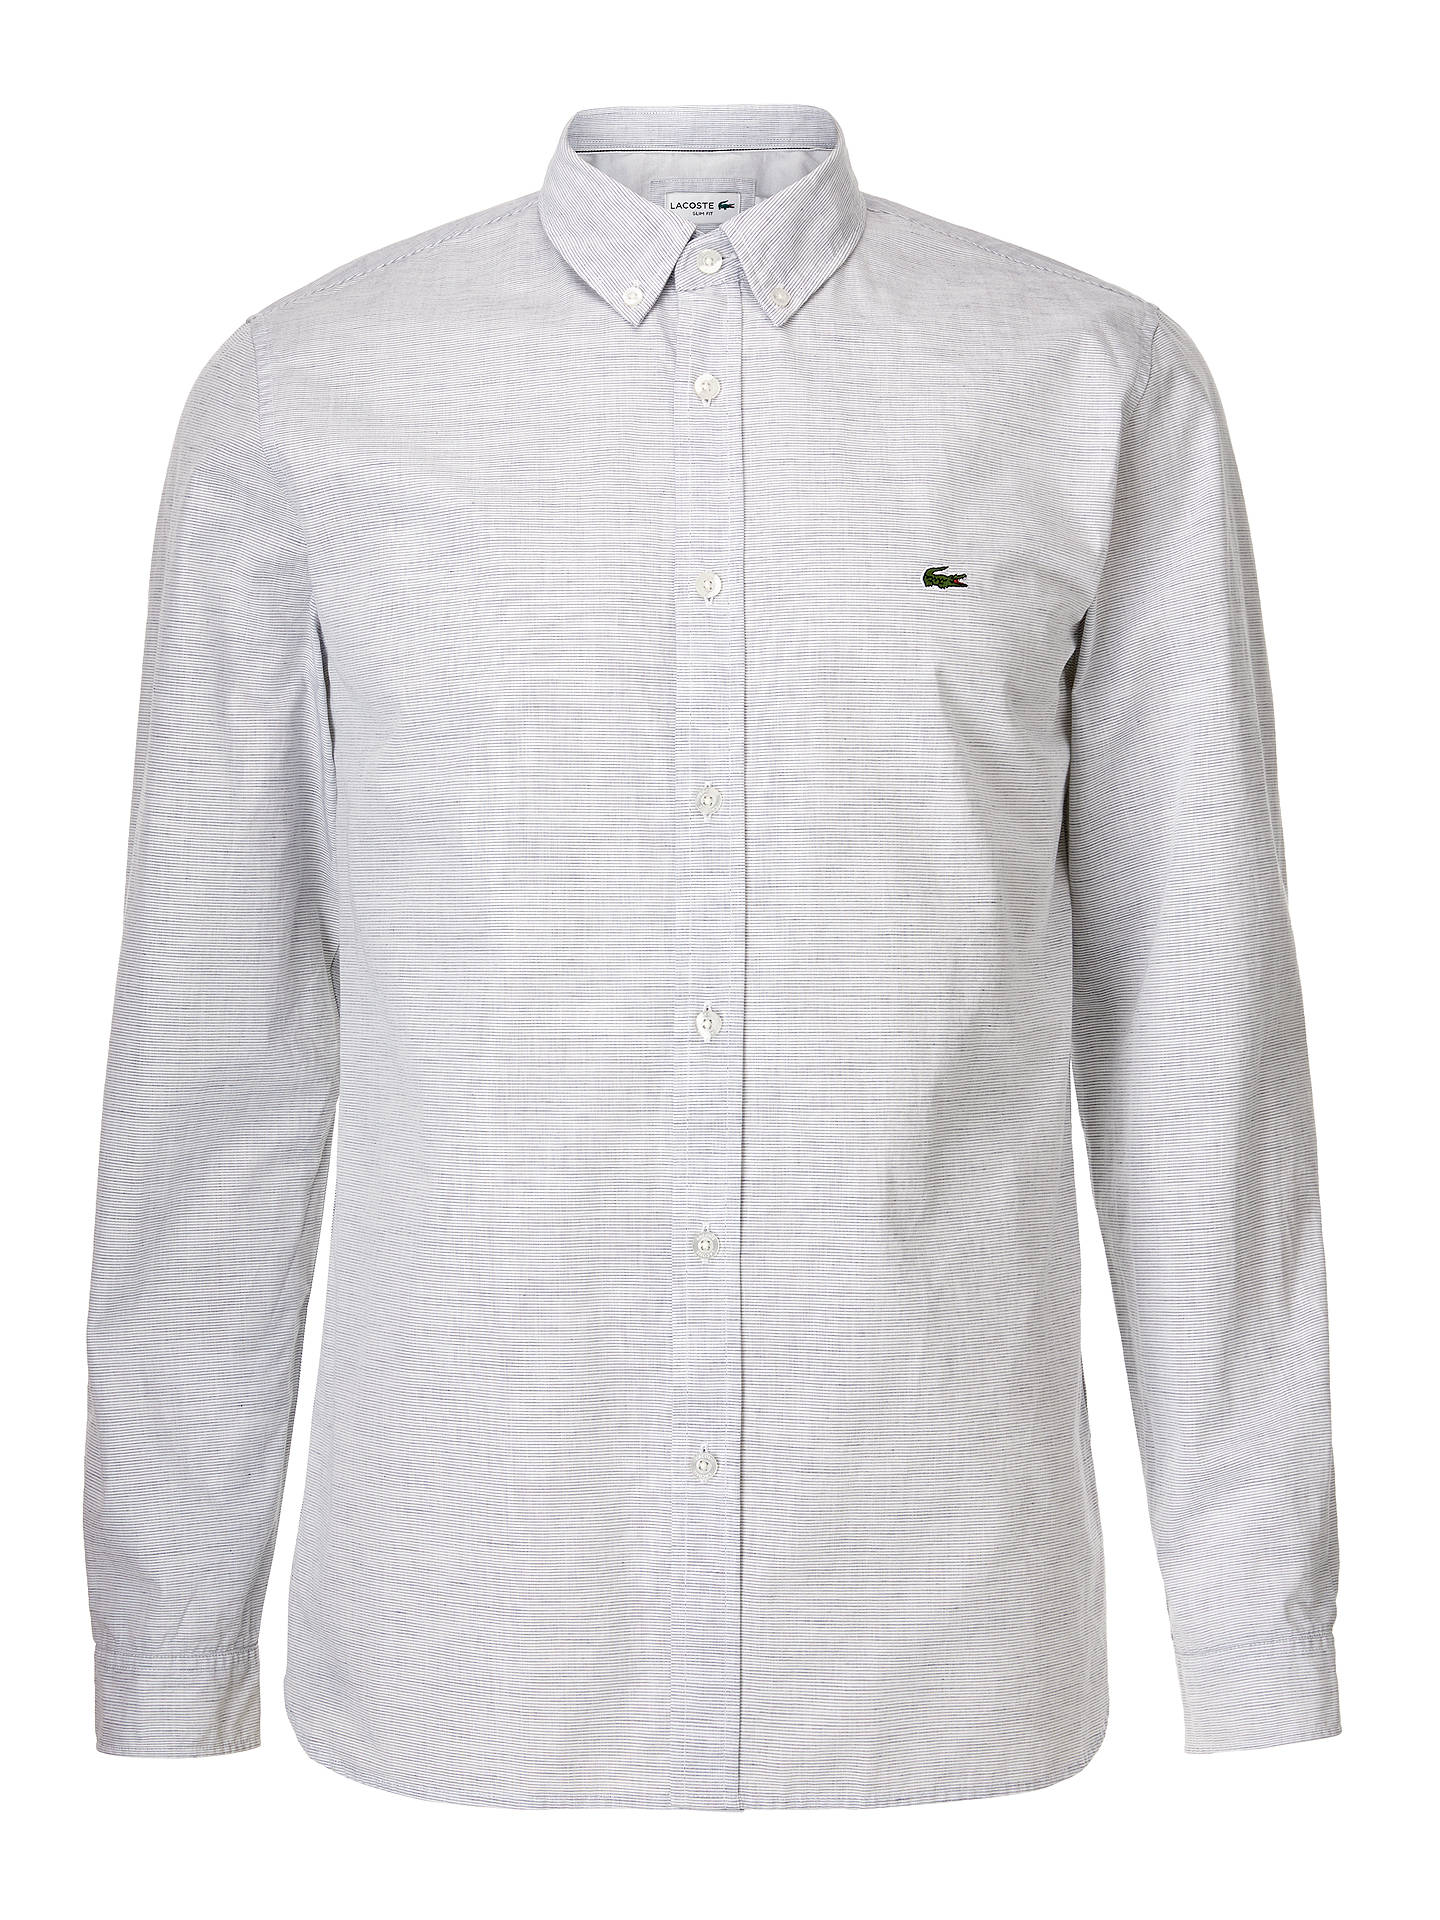 3dff277420 Lacoste Long Sleeve Slim Fit Textured Shirt, White at John Lewis ...